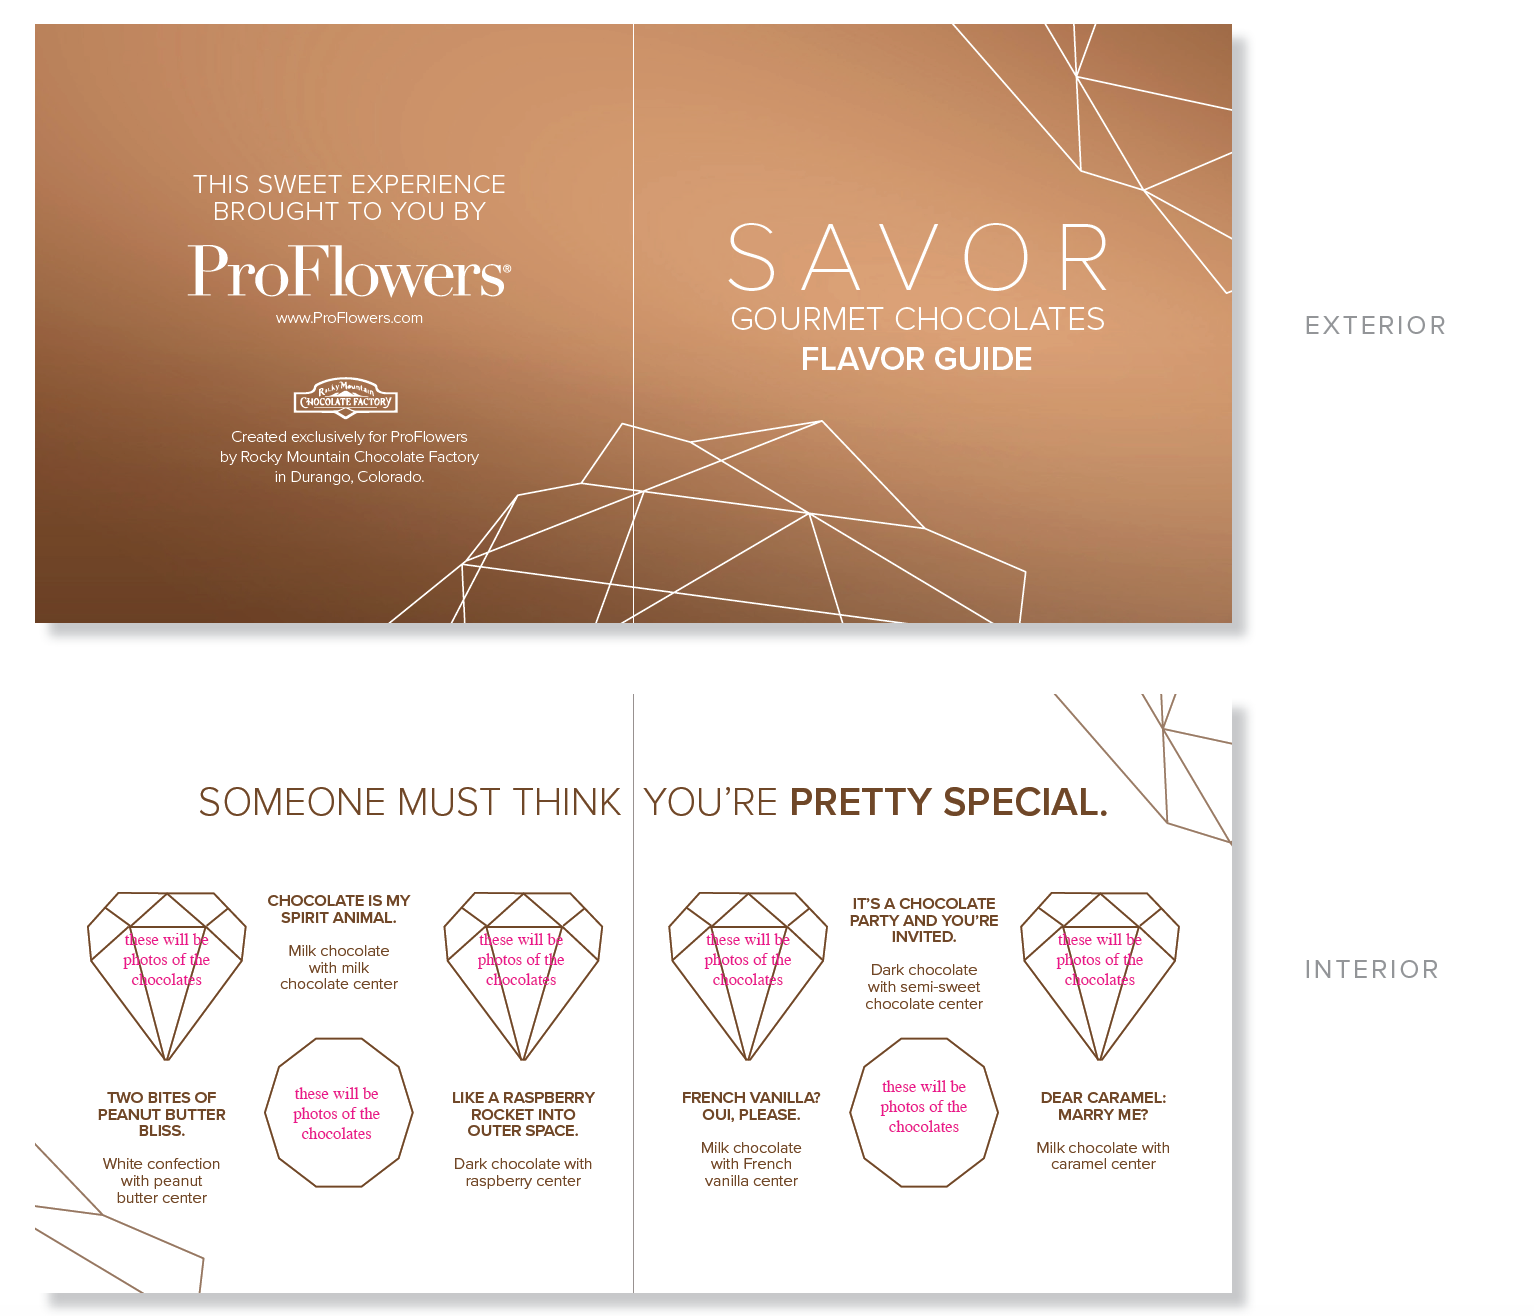 """Carrying on the theme of naming gifts after actions, I chose to name the ProFlowers chocolates """"Savor."""" The elegant design is juxtapositioned with fun flavor descriptions - click the image to read them."""